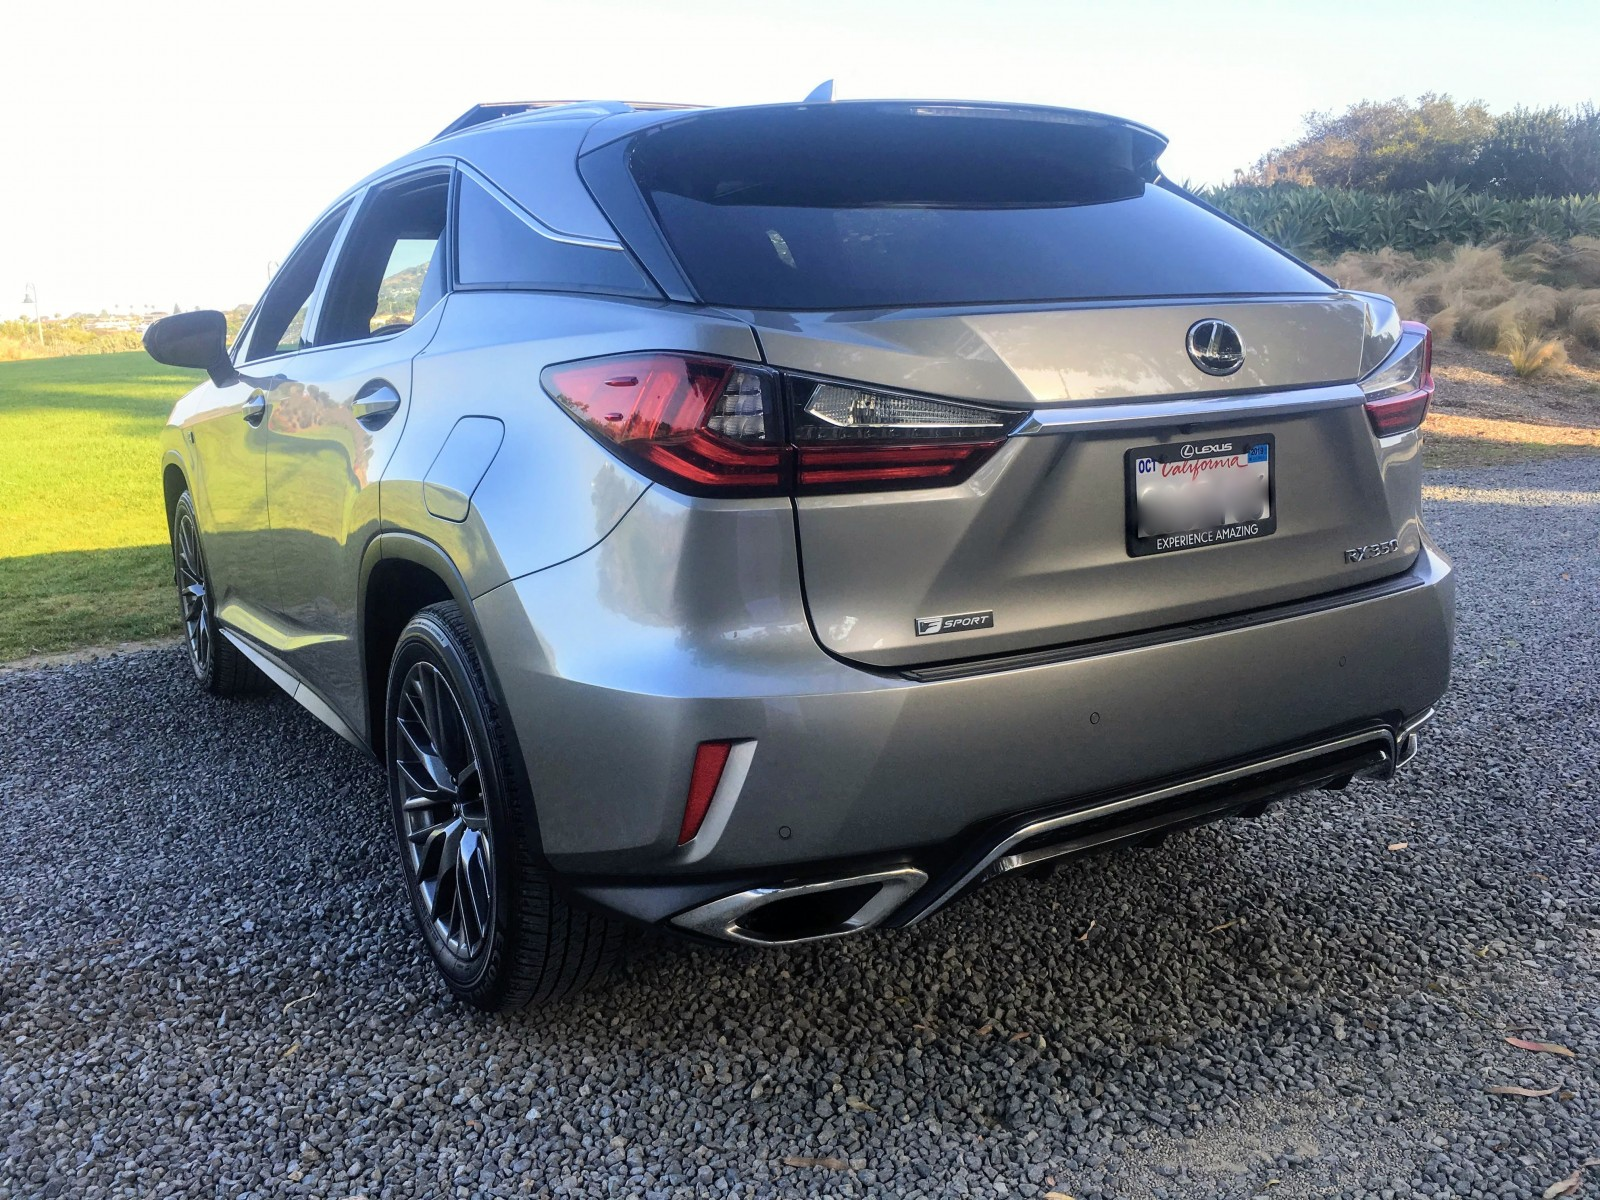 Road Test: 2019 Lexus RX 350 F Sport FWD | Clean Fleet Report